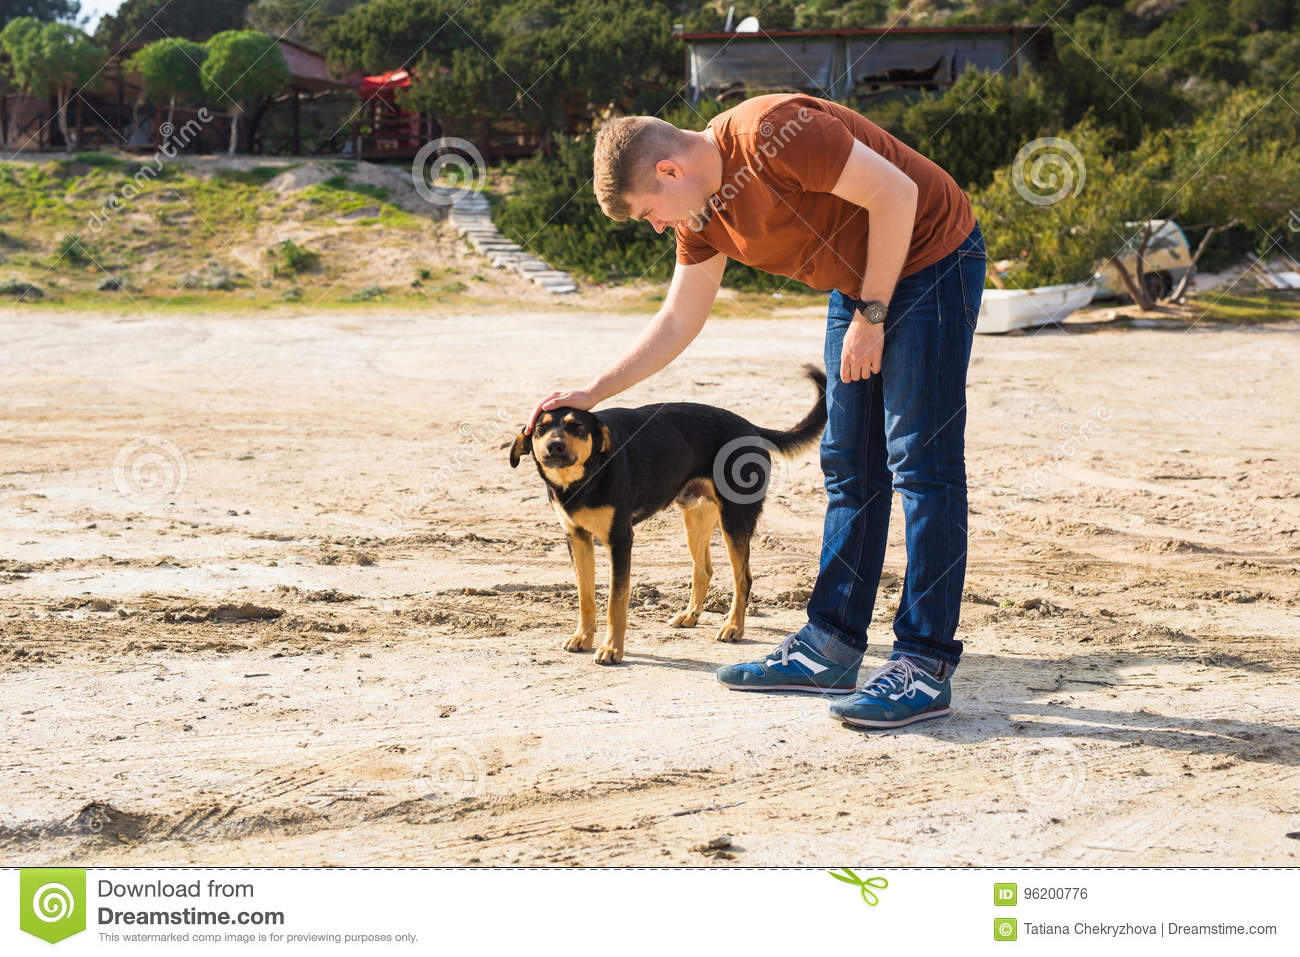 Pet, domestic animal, season and people concept - happy man with his dog walking outdoors